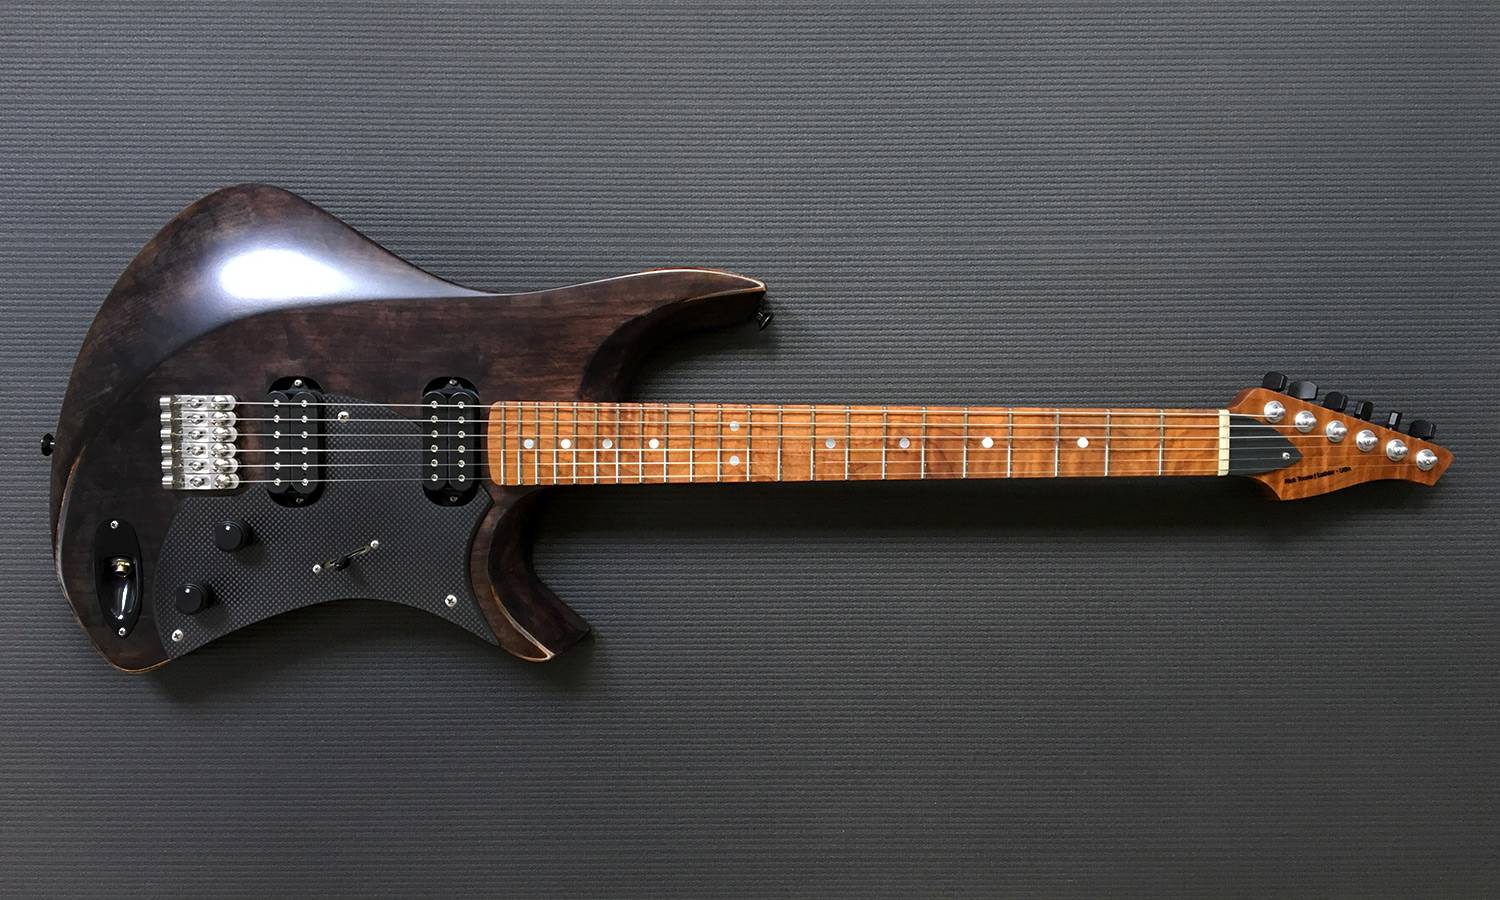 PHOTO: Intonation Cantilever™ precision machined stainless steel solo bridges, Carbon fiber pickguard, OEM DiMarzio pickups. Note jack location on this custom guitar.